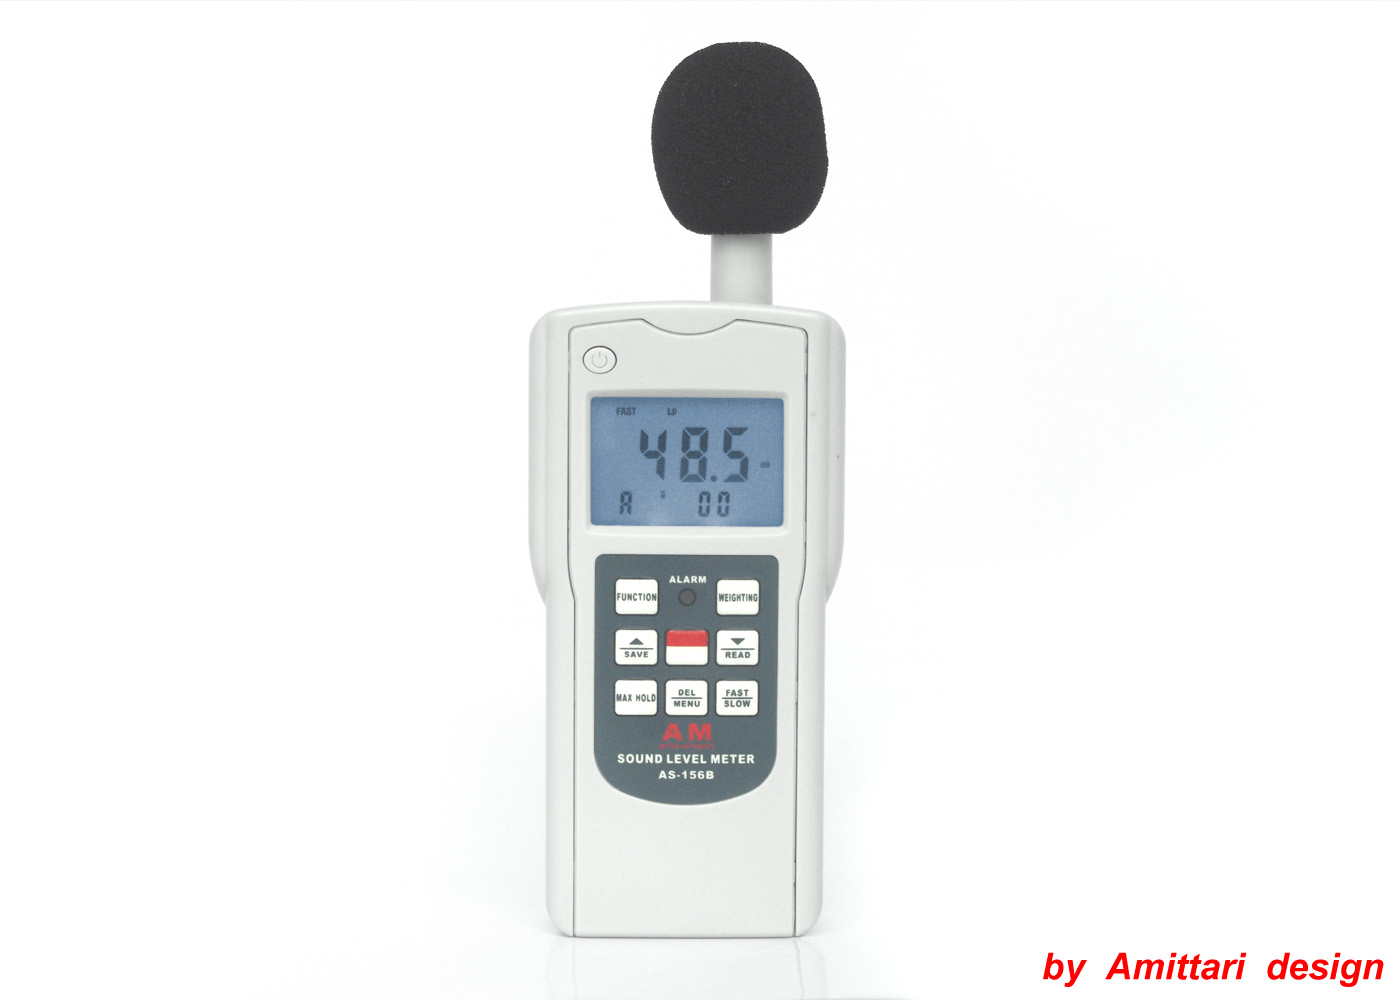 Sound Level Meter AS-156A & AS-156B